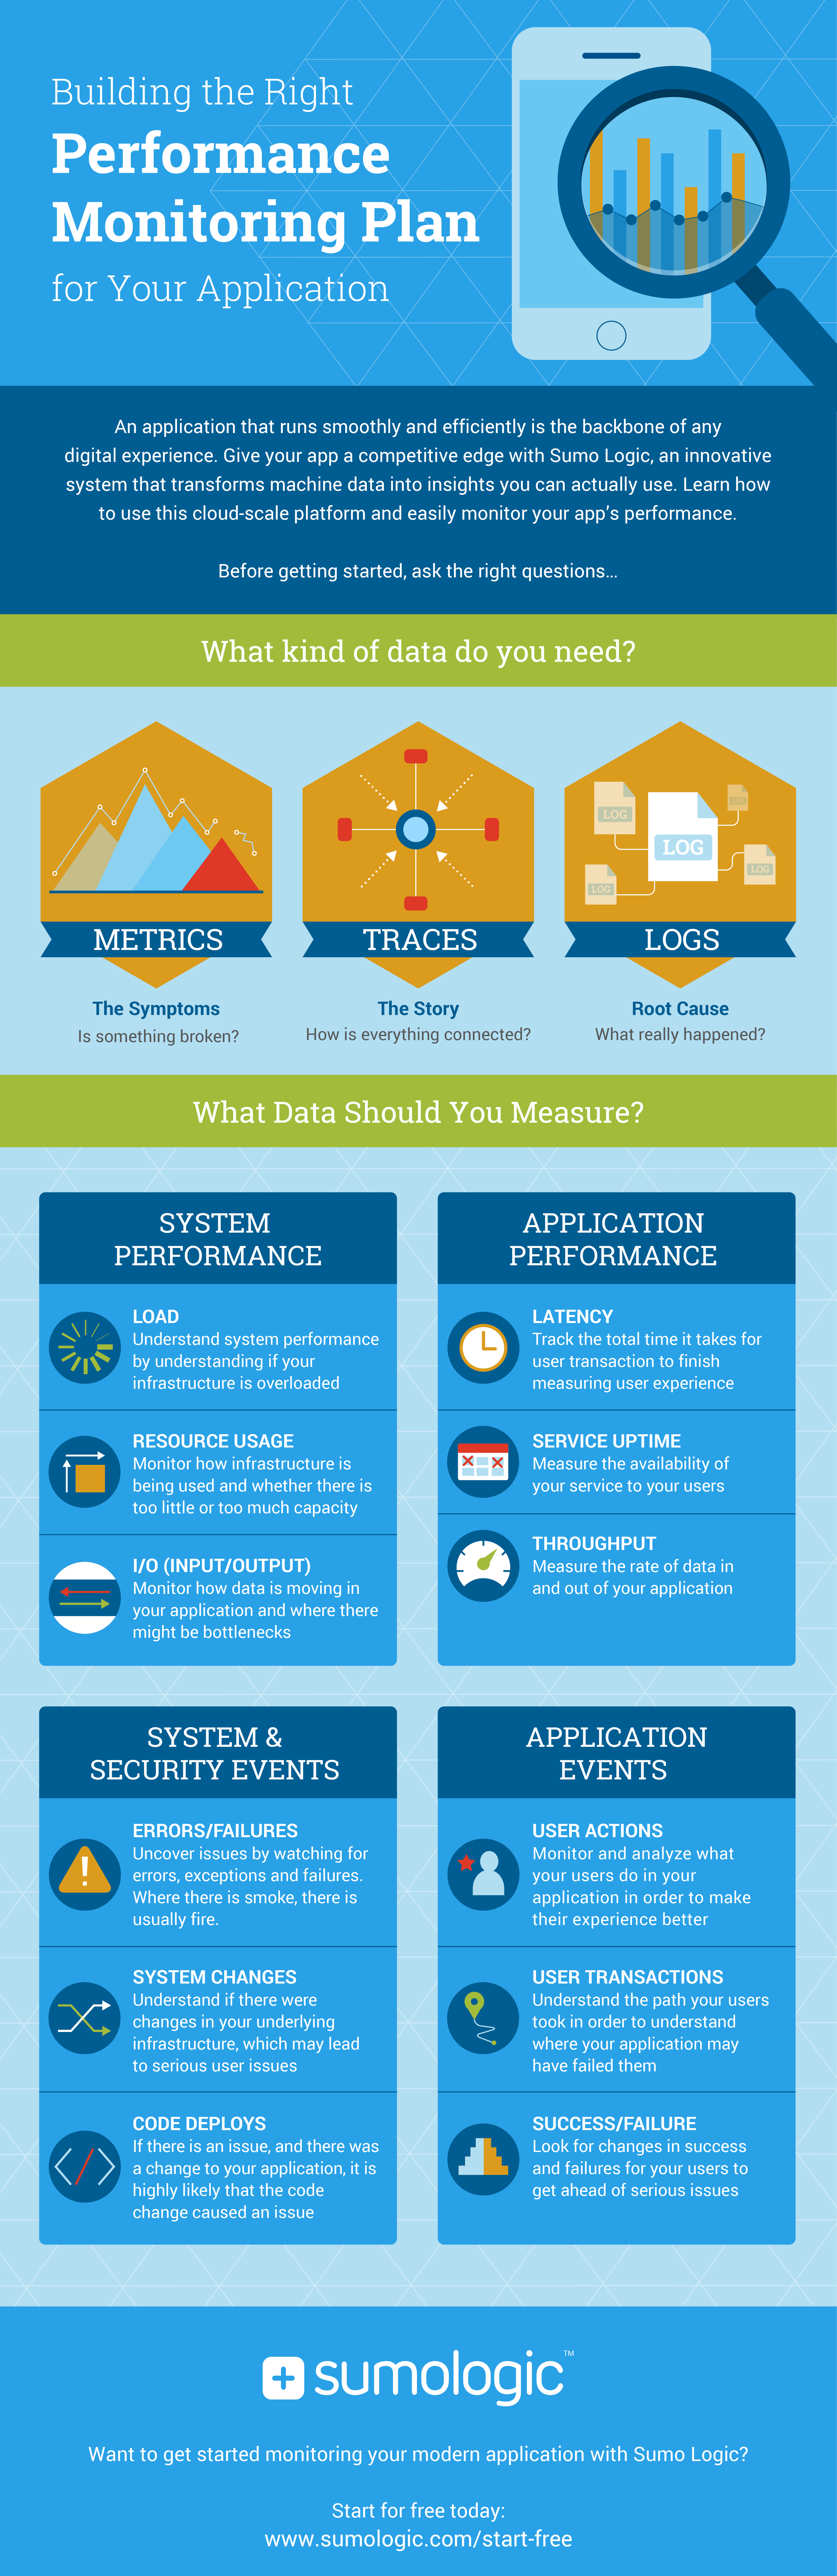 infographic for sumo logic - visual marketing